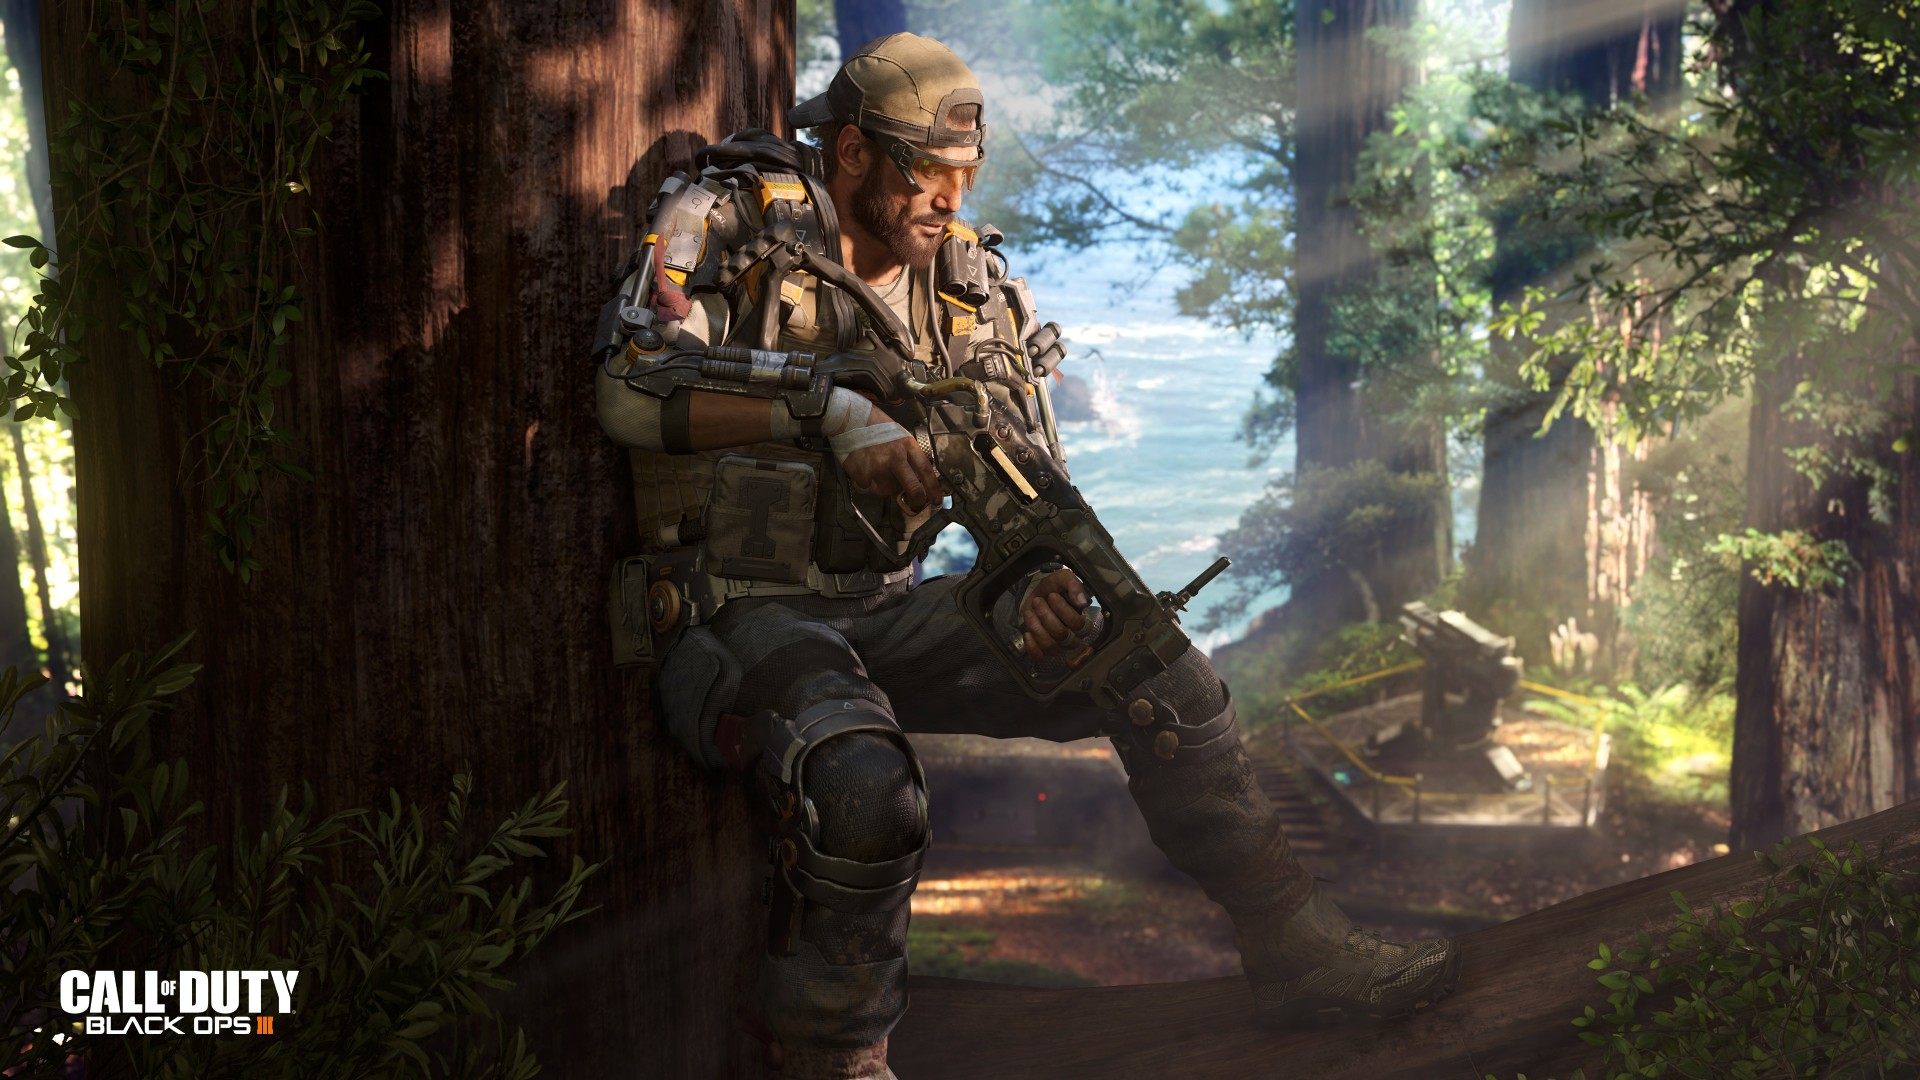 Call Of Duty Ww2 Iphone Wallpaper Call Of Duty Black Ops 3 Specialist Nomad Wallpapers Hd